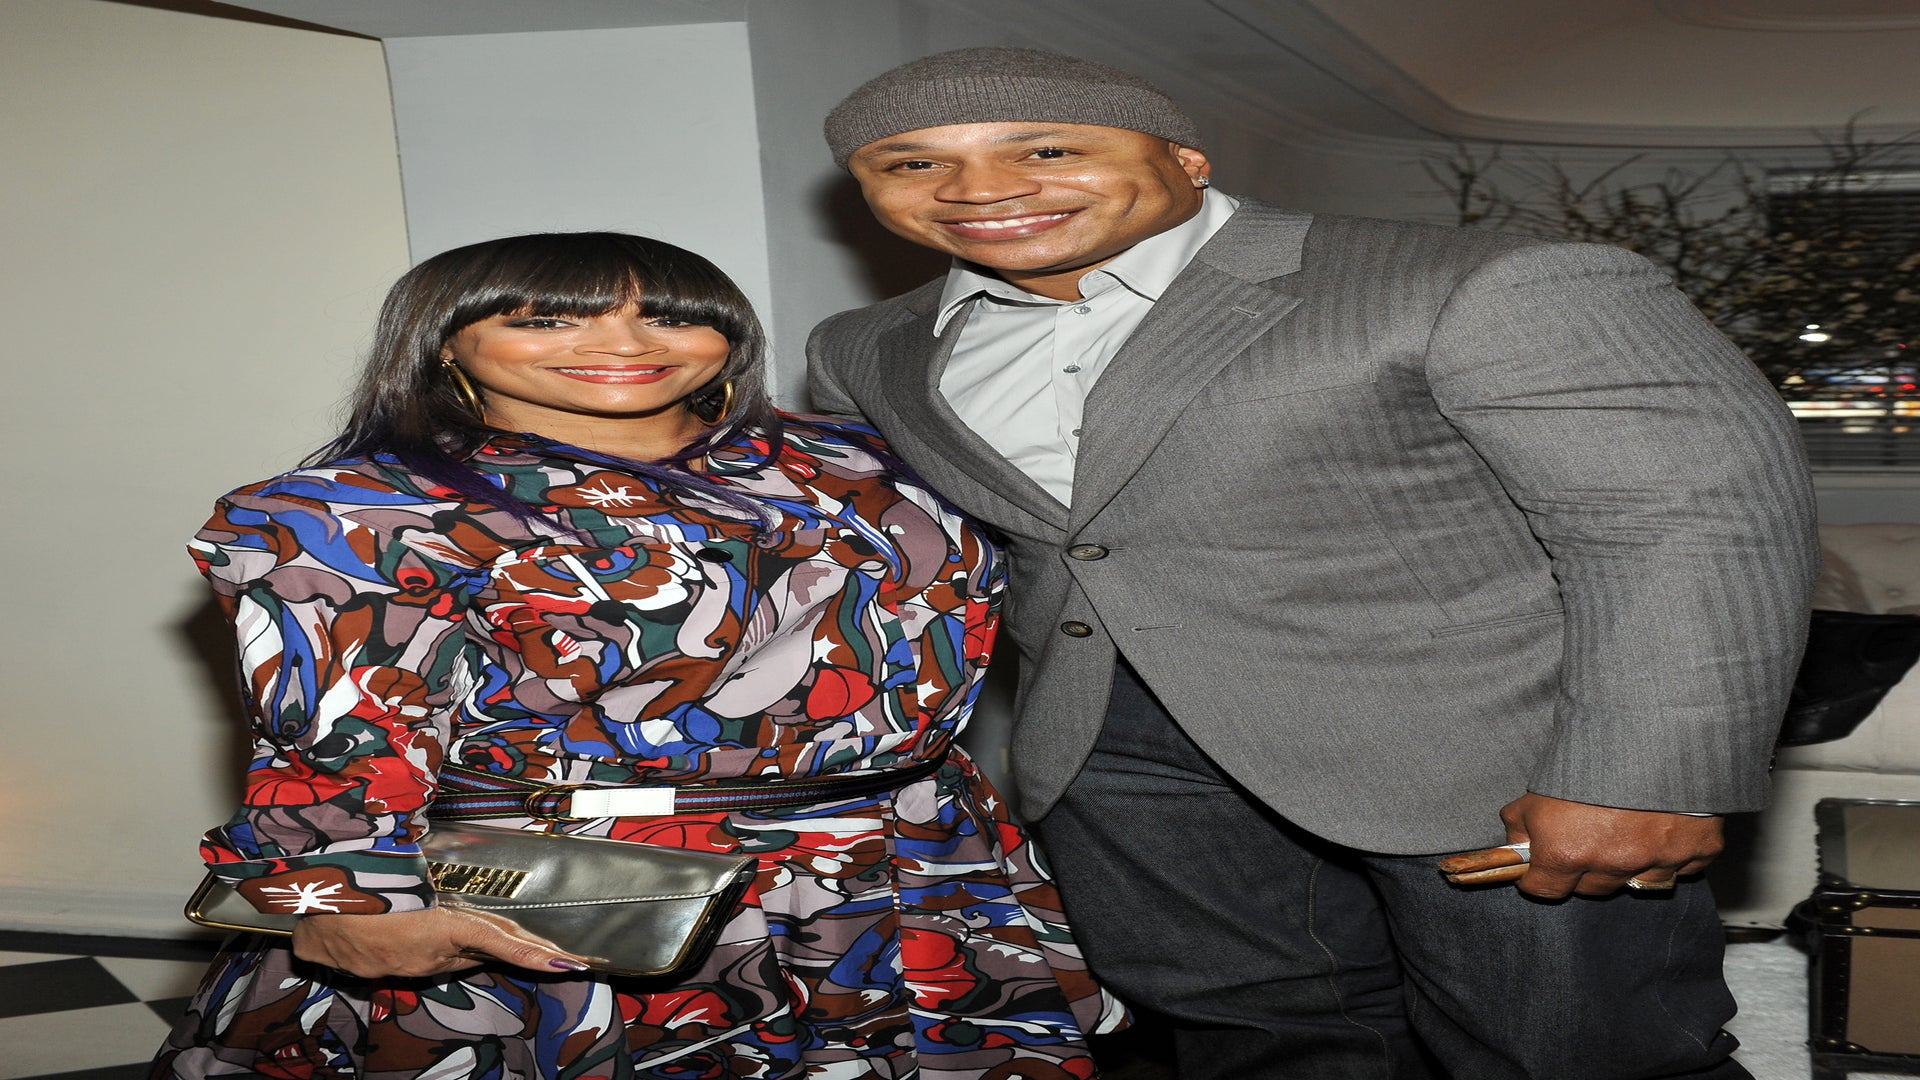 LL Cool J And His Wife Simone Celebrate Love and Give Back With Chris Paul and His Wife Jada